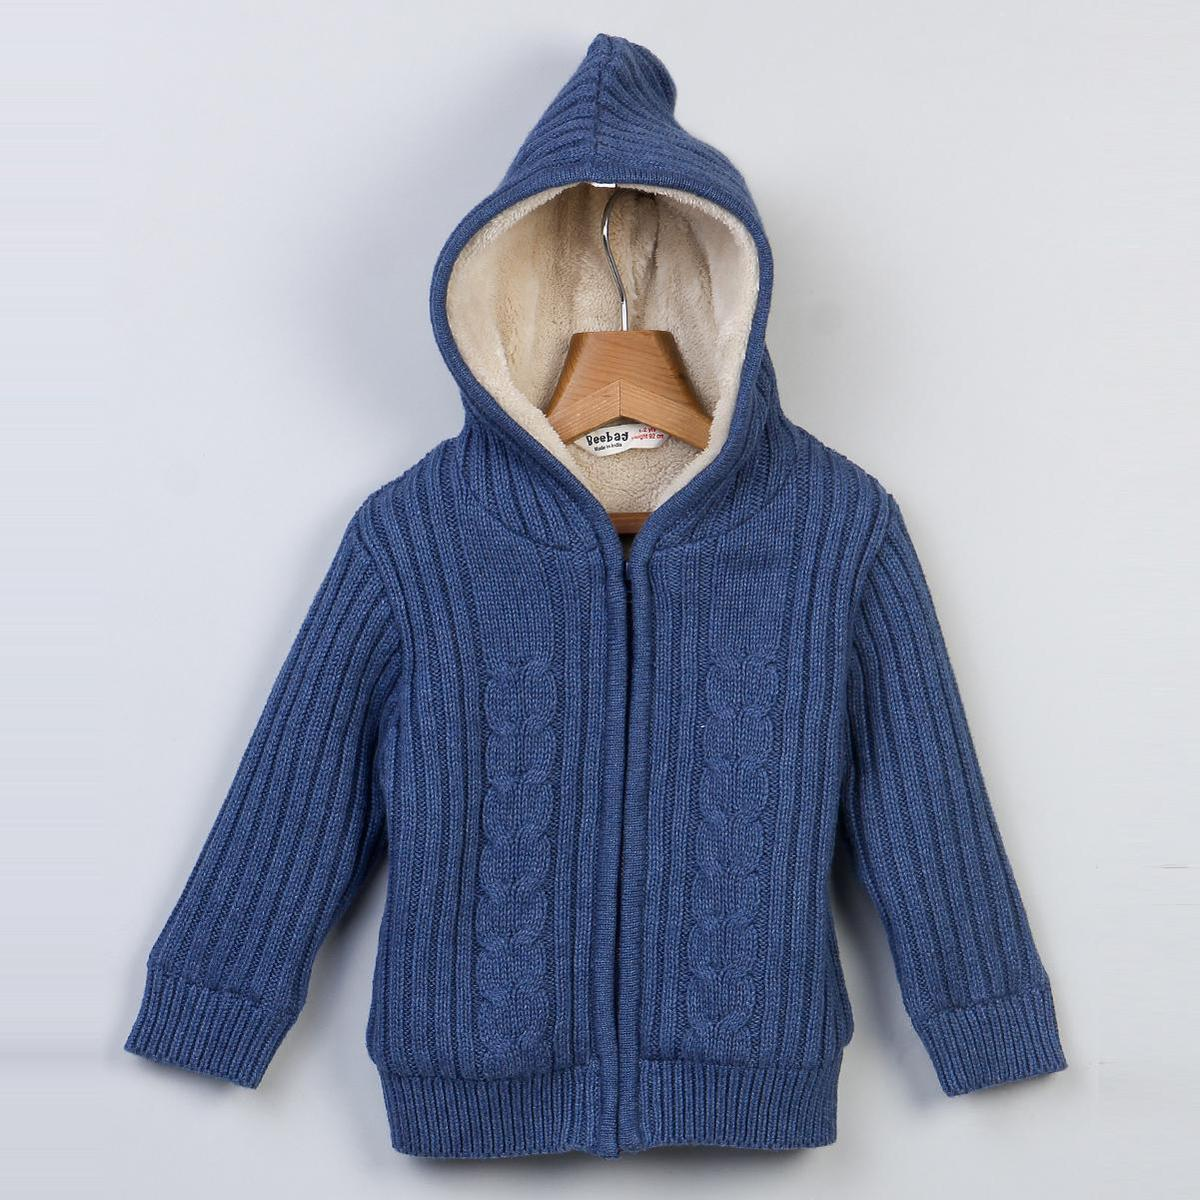 Beebay Fleece Lined Cable Sweater Hoodie For Kids